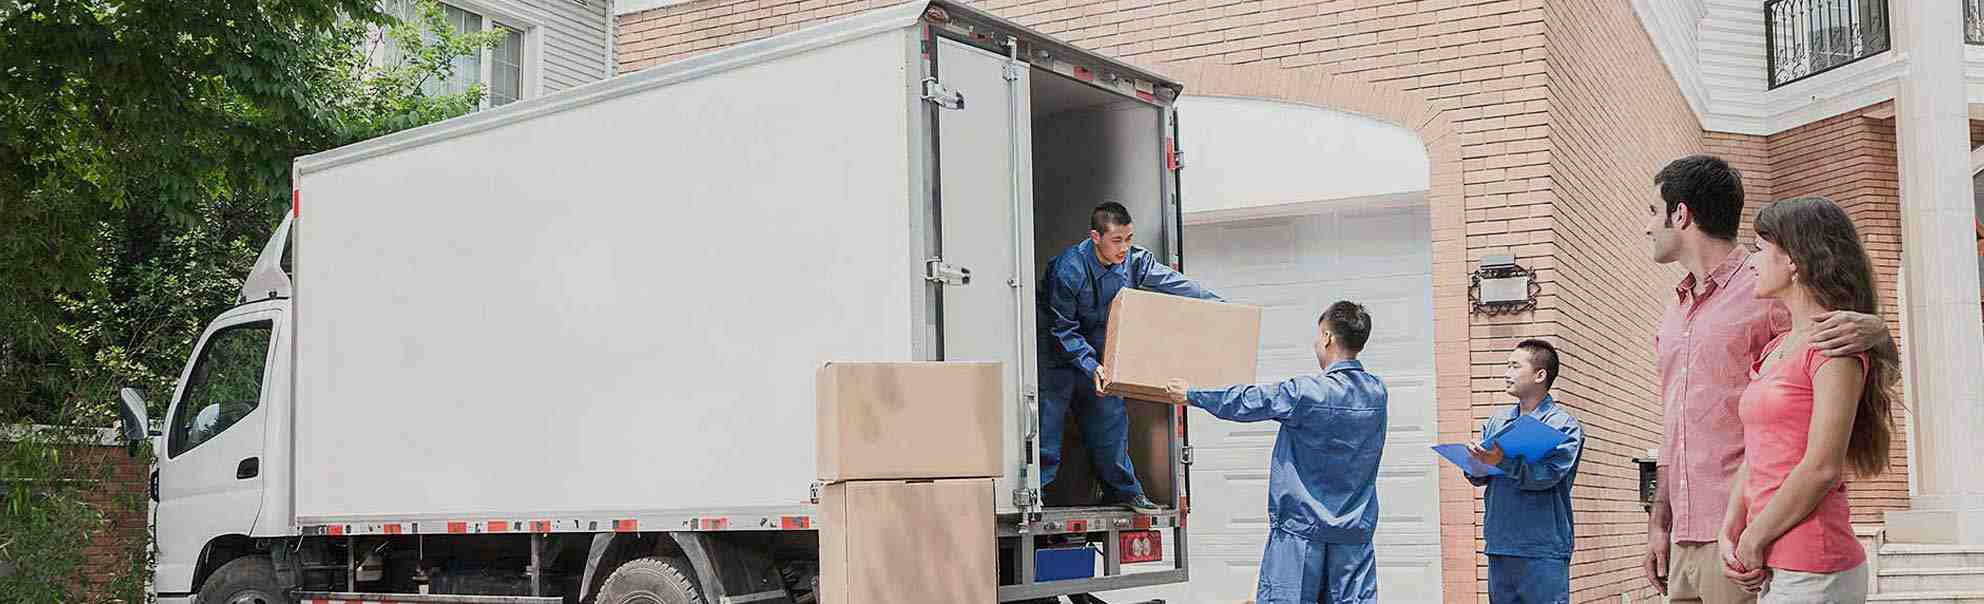 Best movers and packers indore